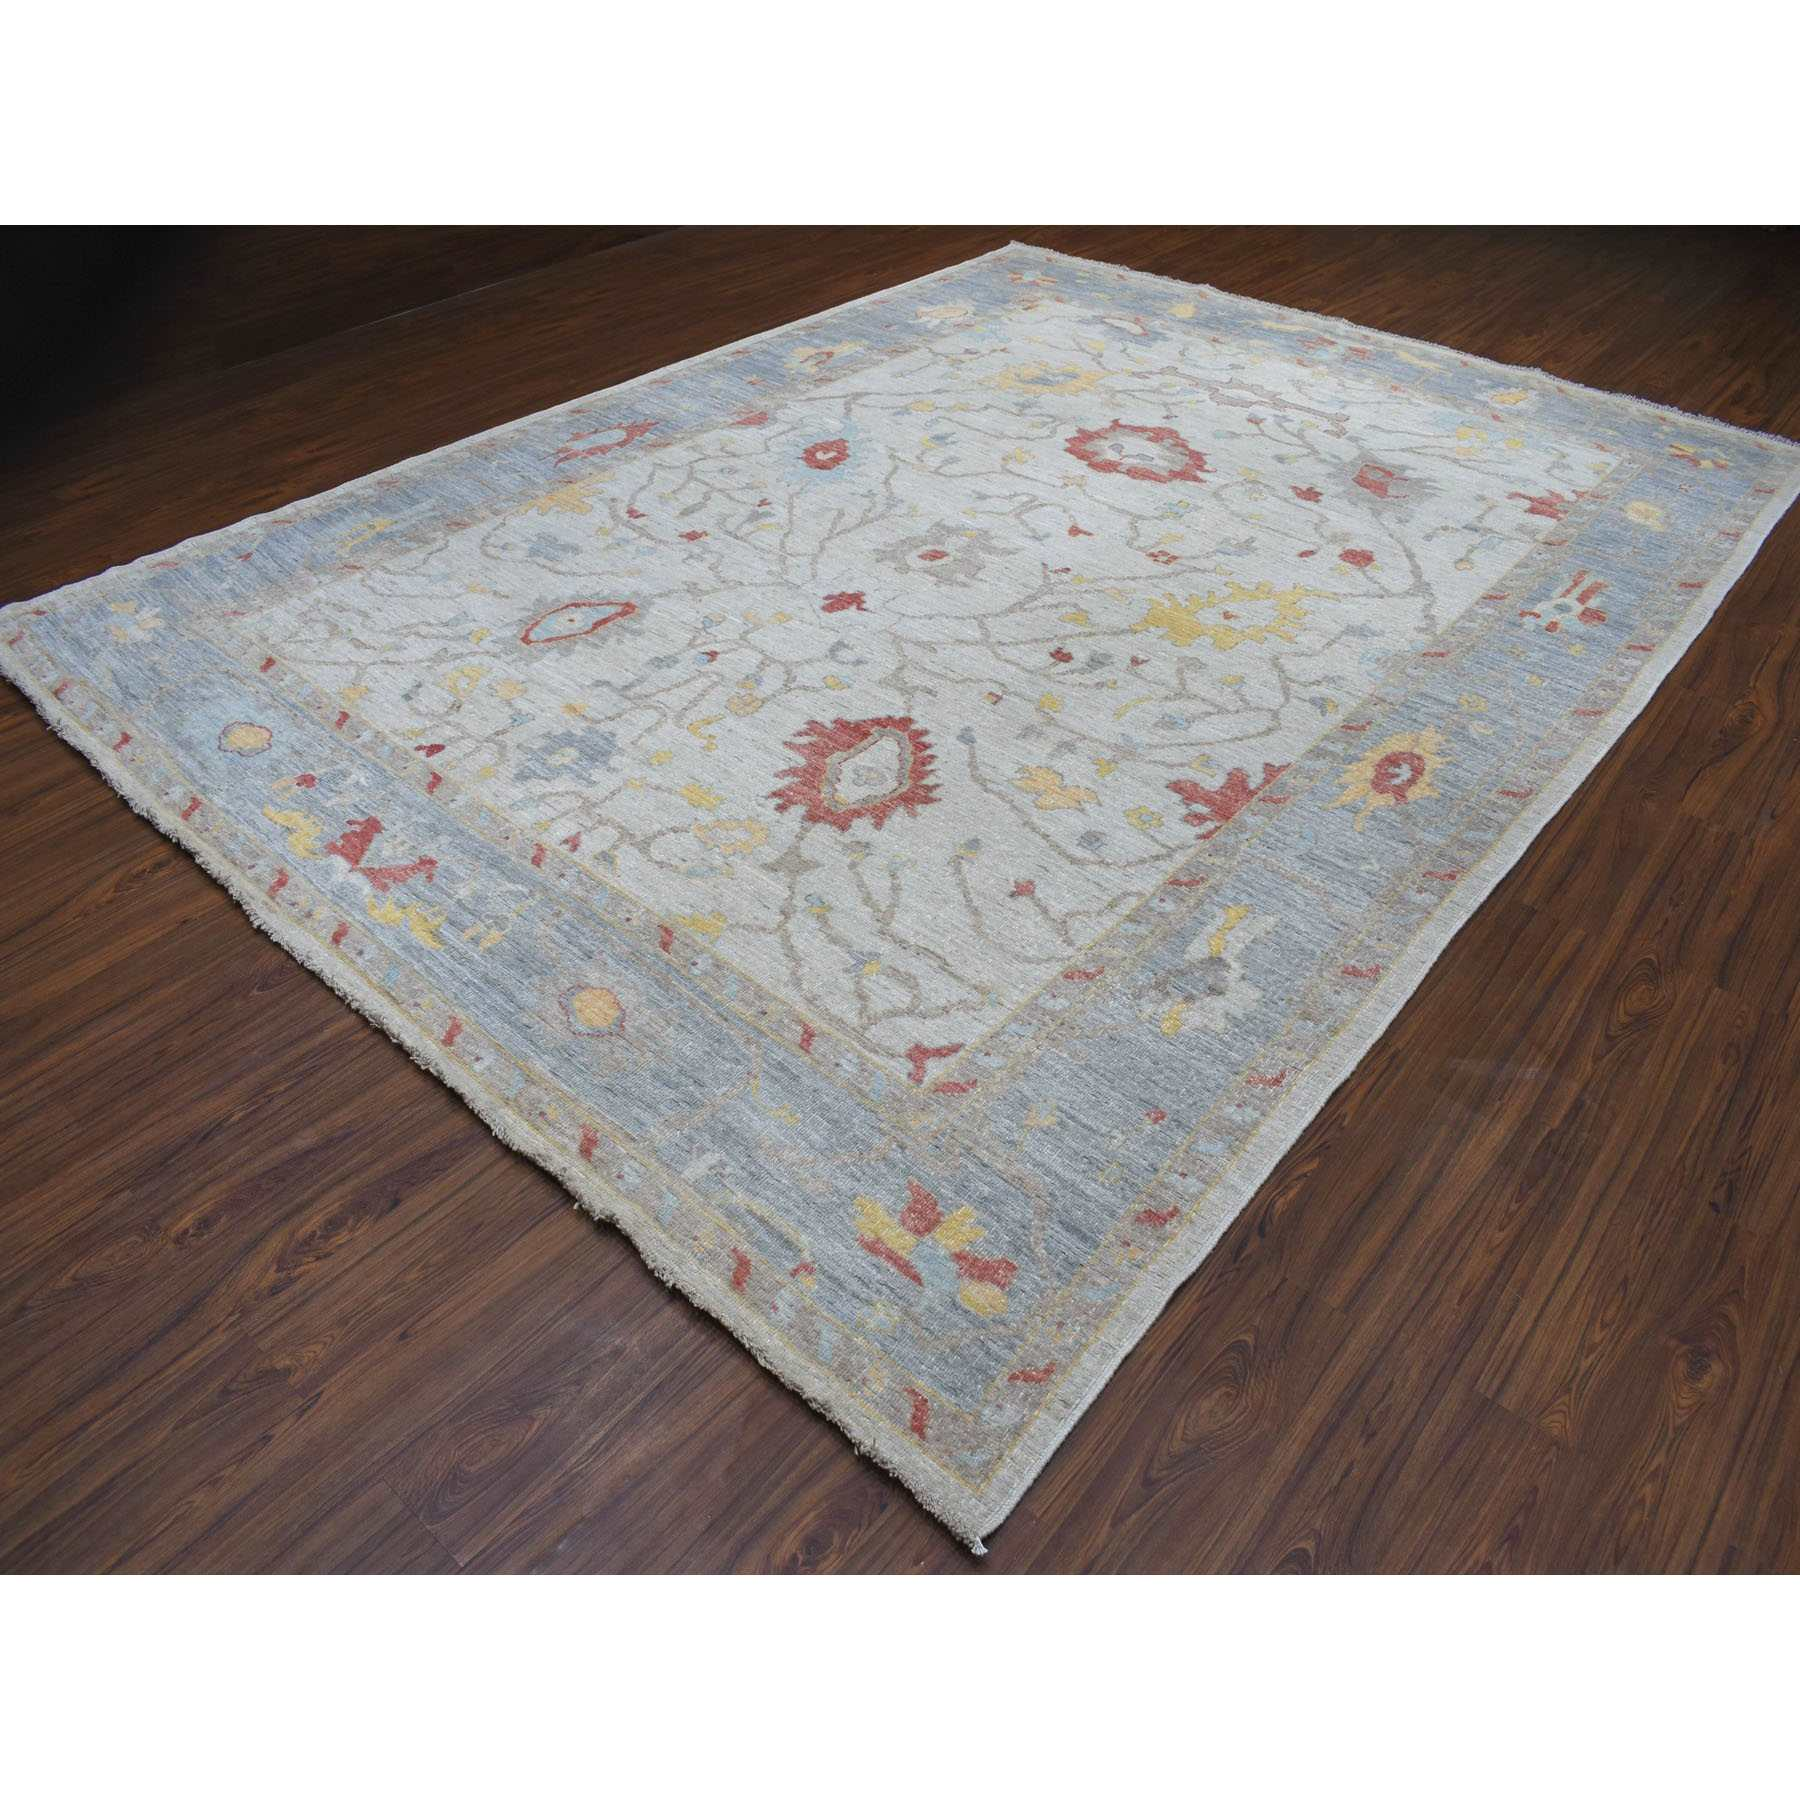 """9'9""""x13' Ivory Angora Oushak With Soft Velvety Wool Hand Knotted Oriental Rug"""